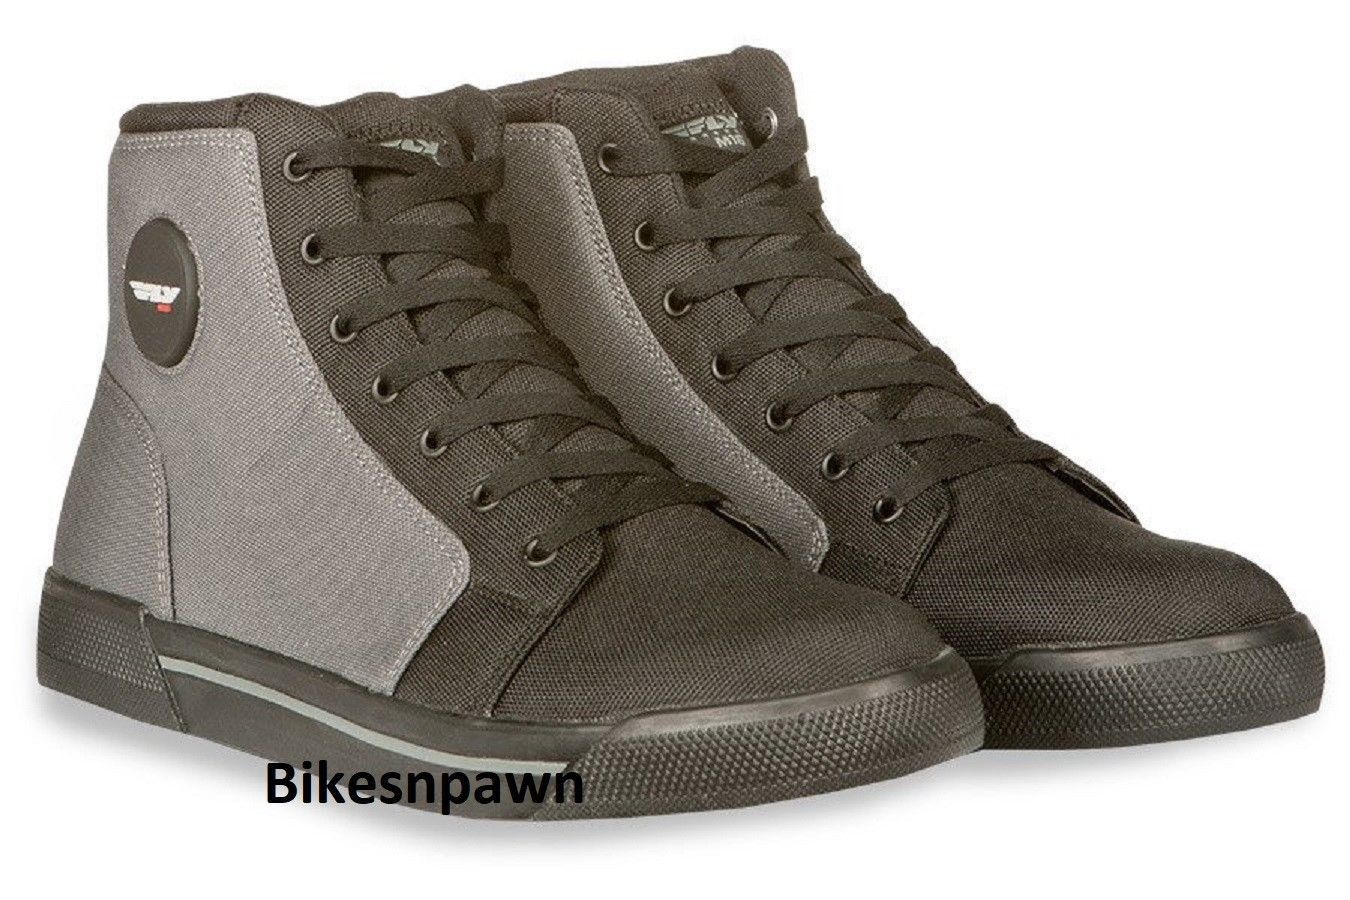 New Size 13 Mens FLY Racing M16 Canvas Motorcycle Street Riding Shoe